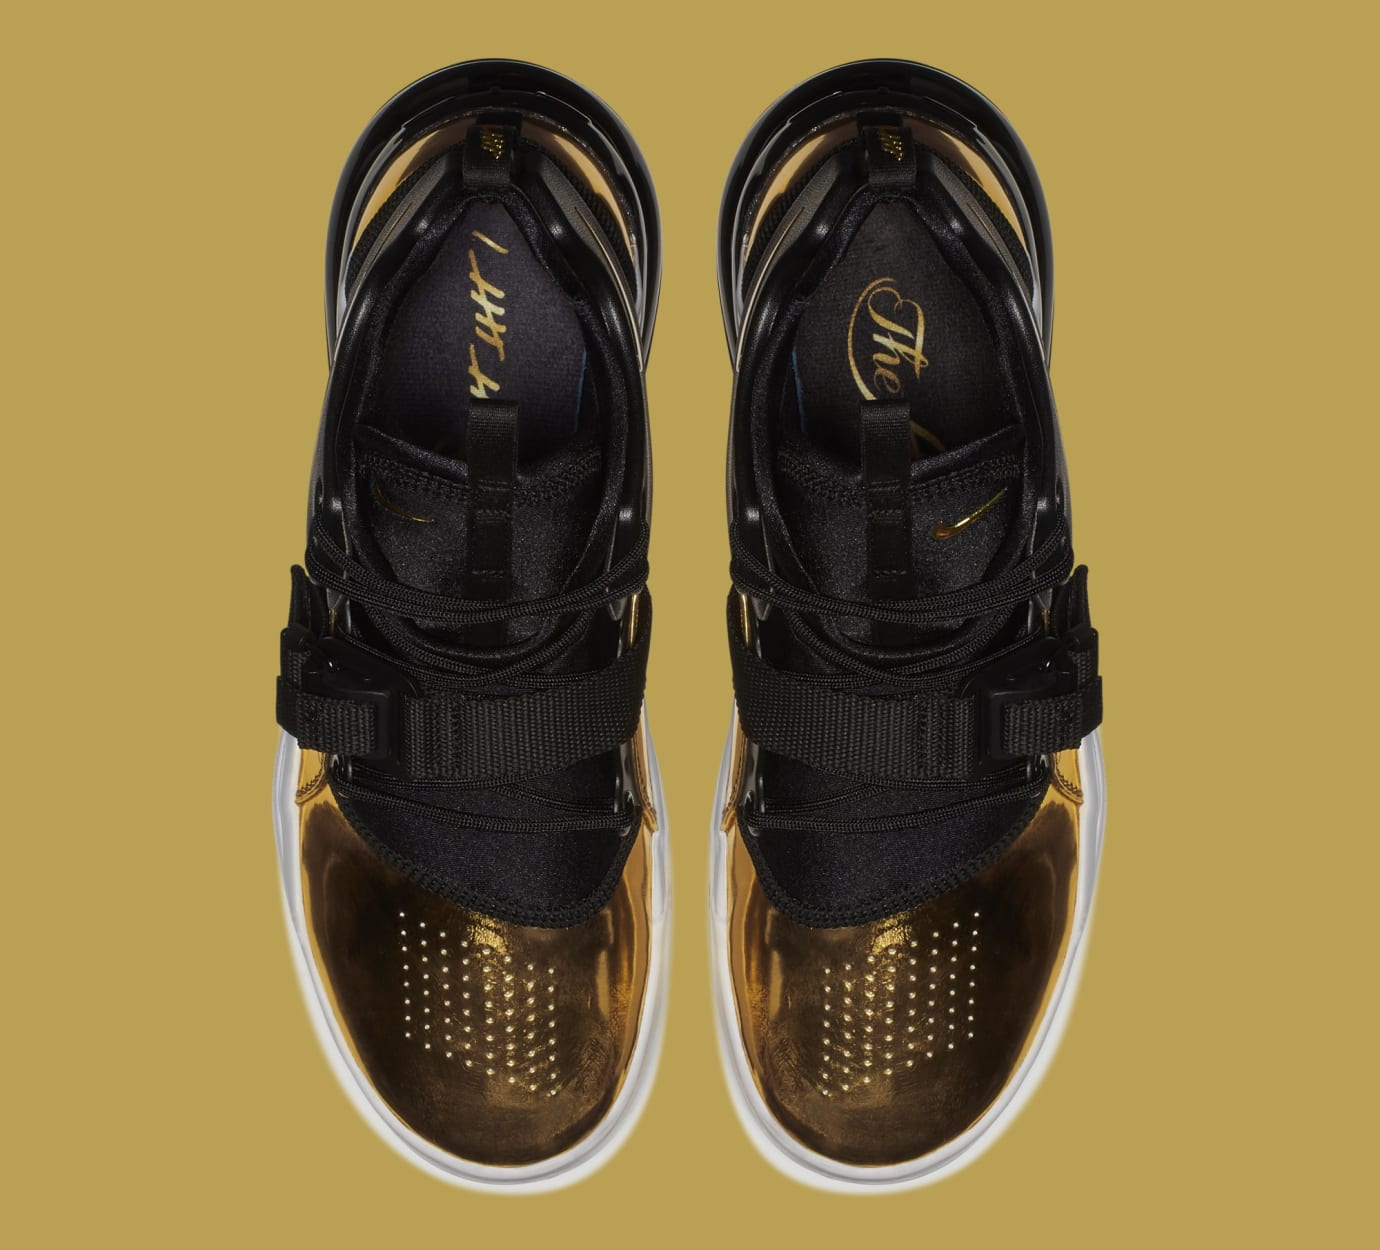 Nike Air Force 270 'Gold Standard' AT5752-700 (Top)